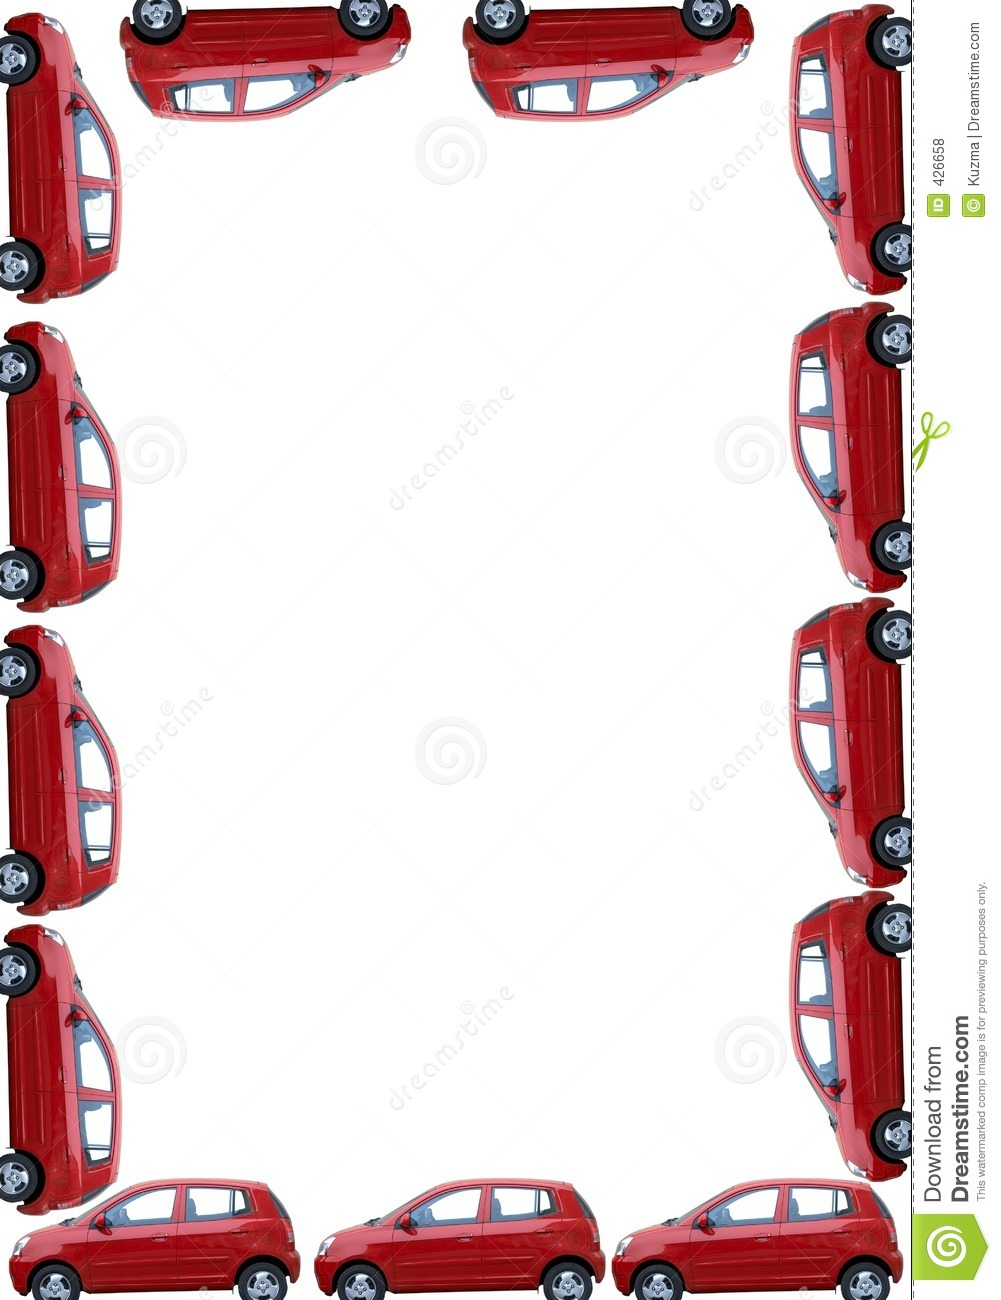 Border With Isolated Cars Royalty Free Stock Photos - Image: 426658